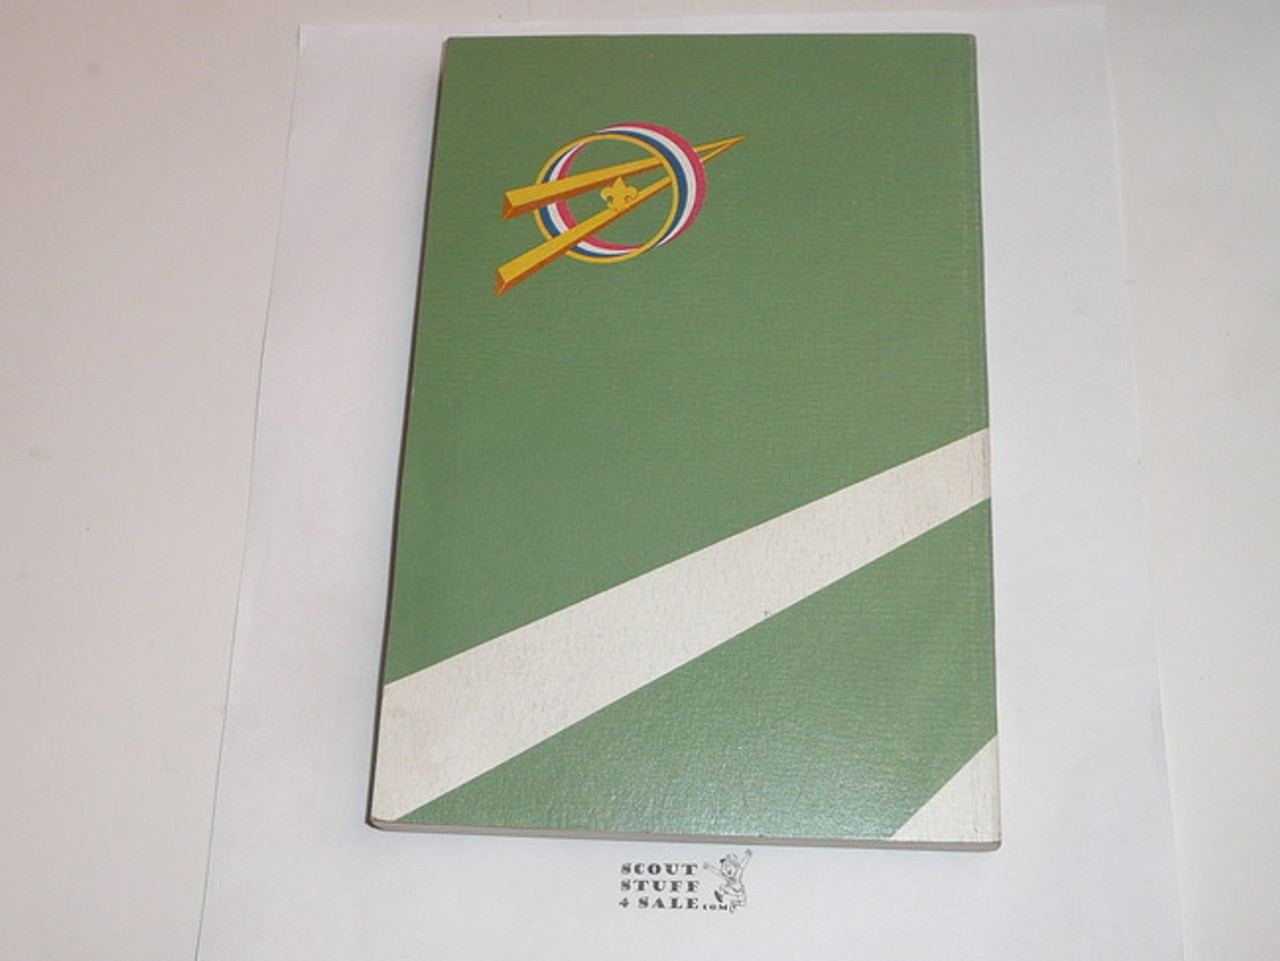 1959 Explorer Scout Manual, Second Edition, 1959 Printing 18291